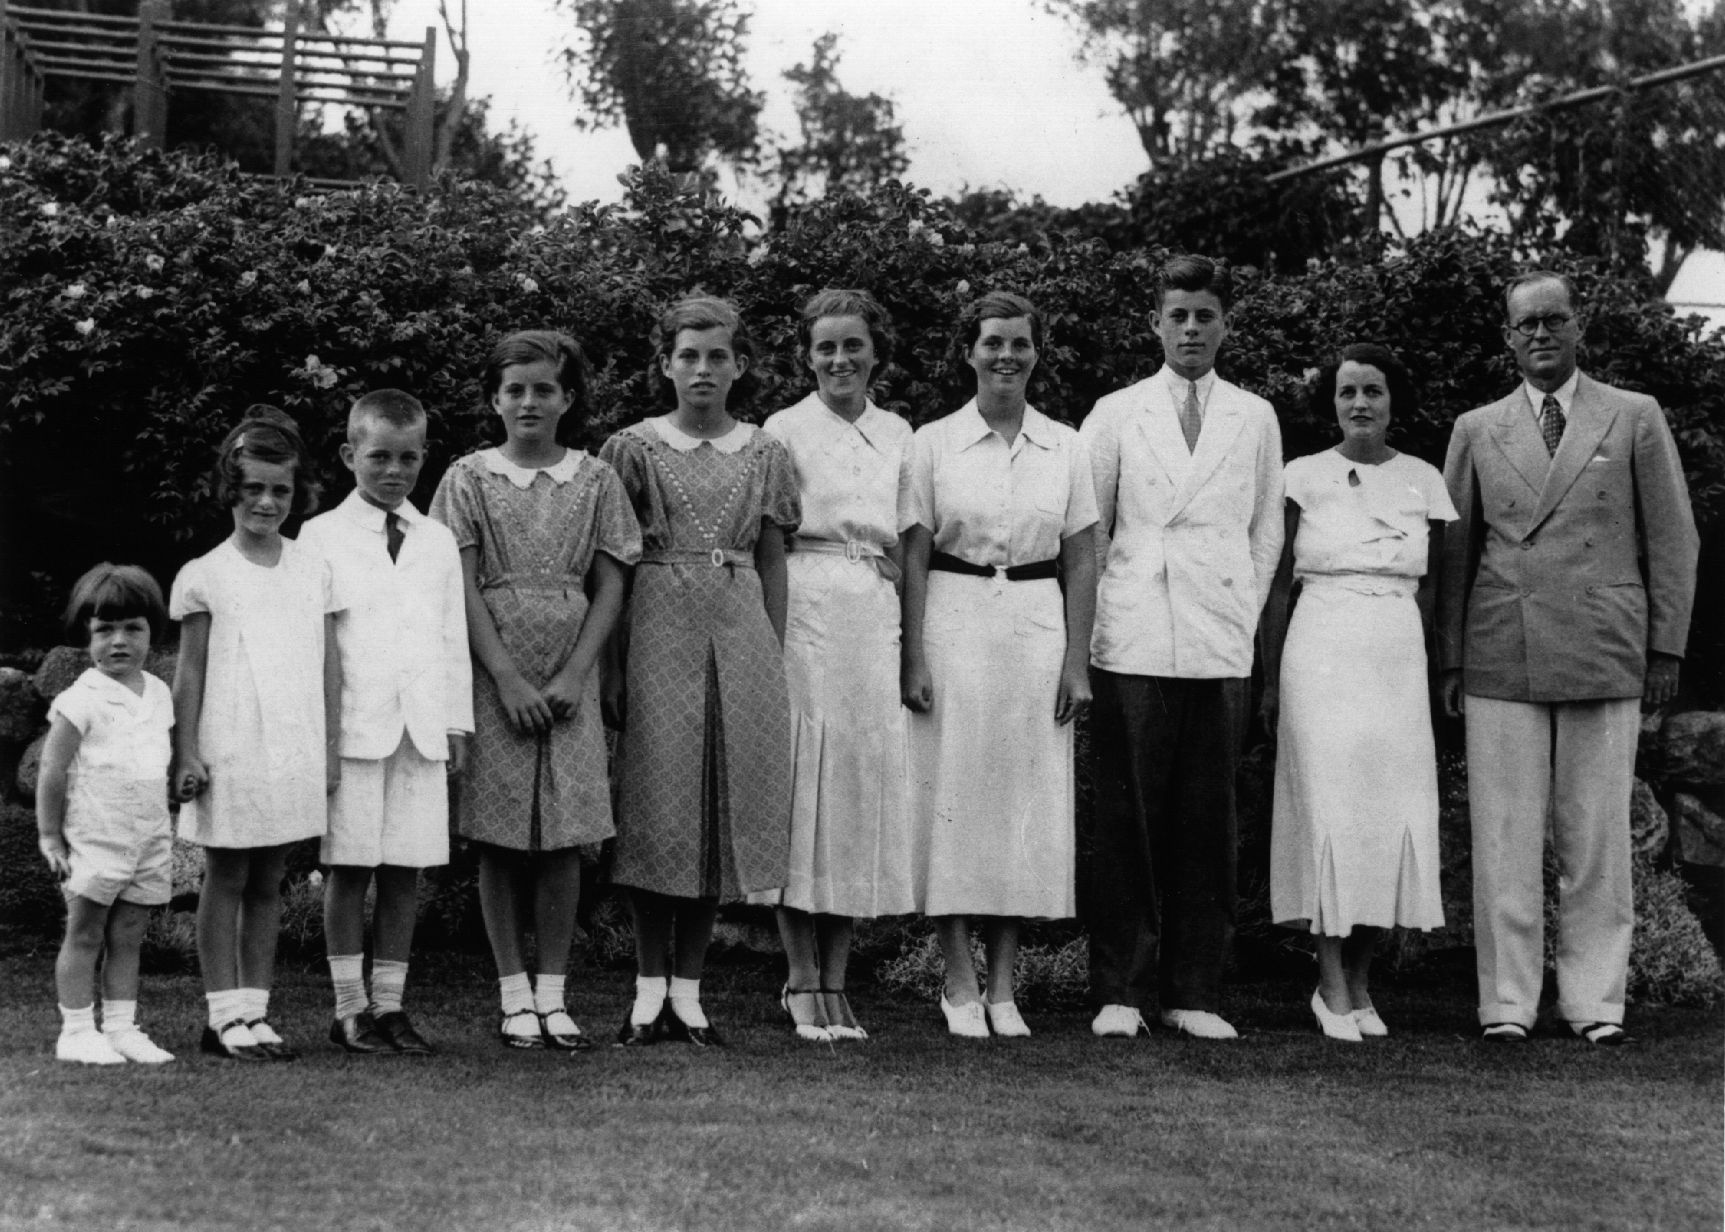 1937: American multi-millionaire Joseph Patrick Kennedy (right), the newly-appointed ambassador to London, with his wife Rose Kennedy (second from right) and eight of their nine children, in London. From left: Edward, Jeanne, Robert, Patricia (1924 - 2006), Eunice, Kathleen, Rosemary and John F Kennedy who later became the 35th President of the United States. (Photo by Keystone/Getty Images)